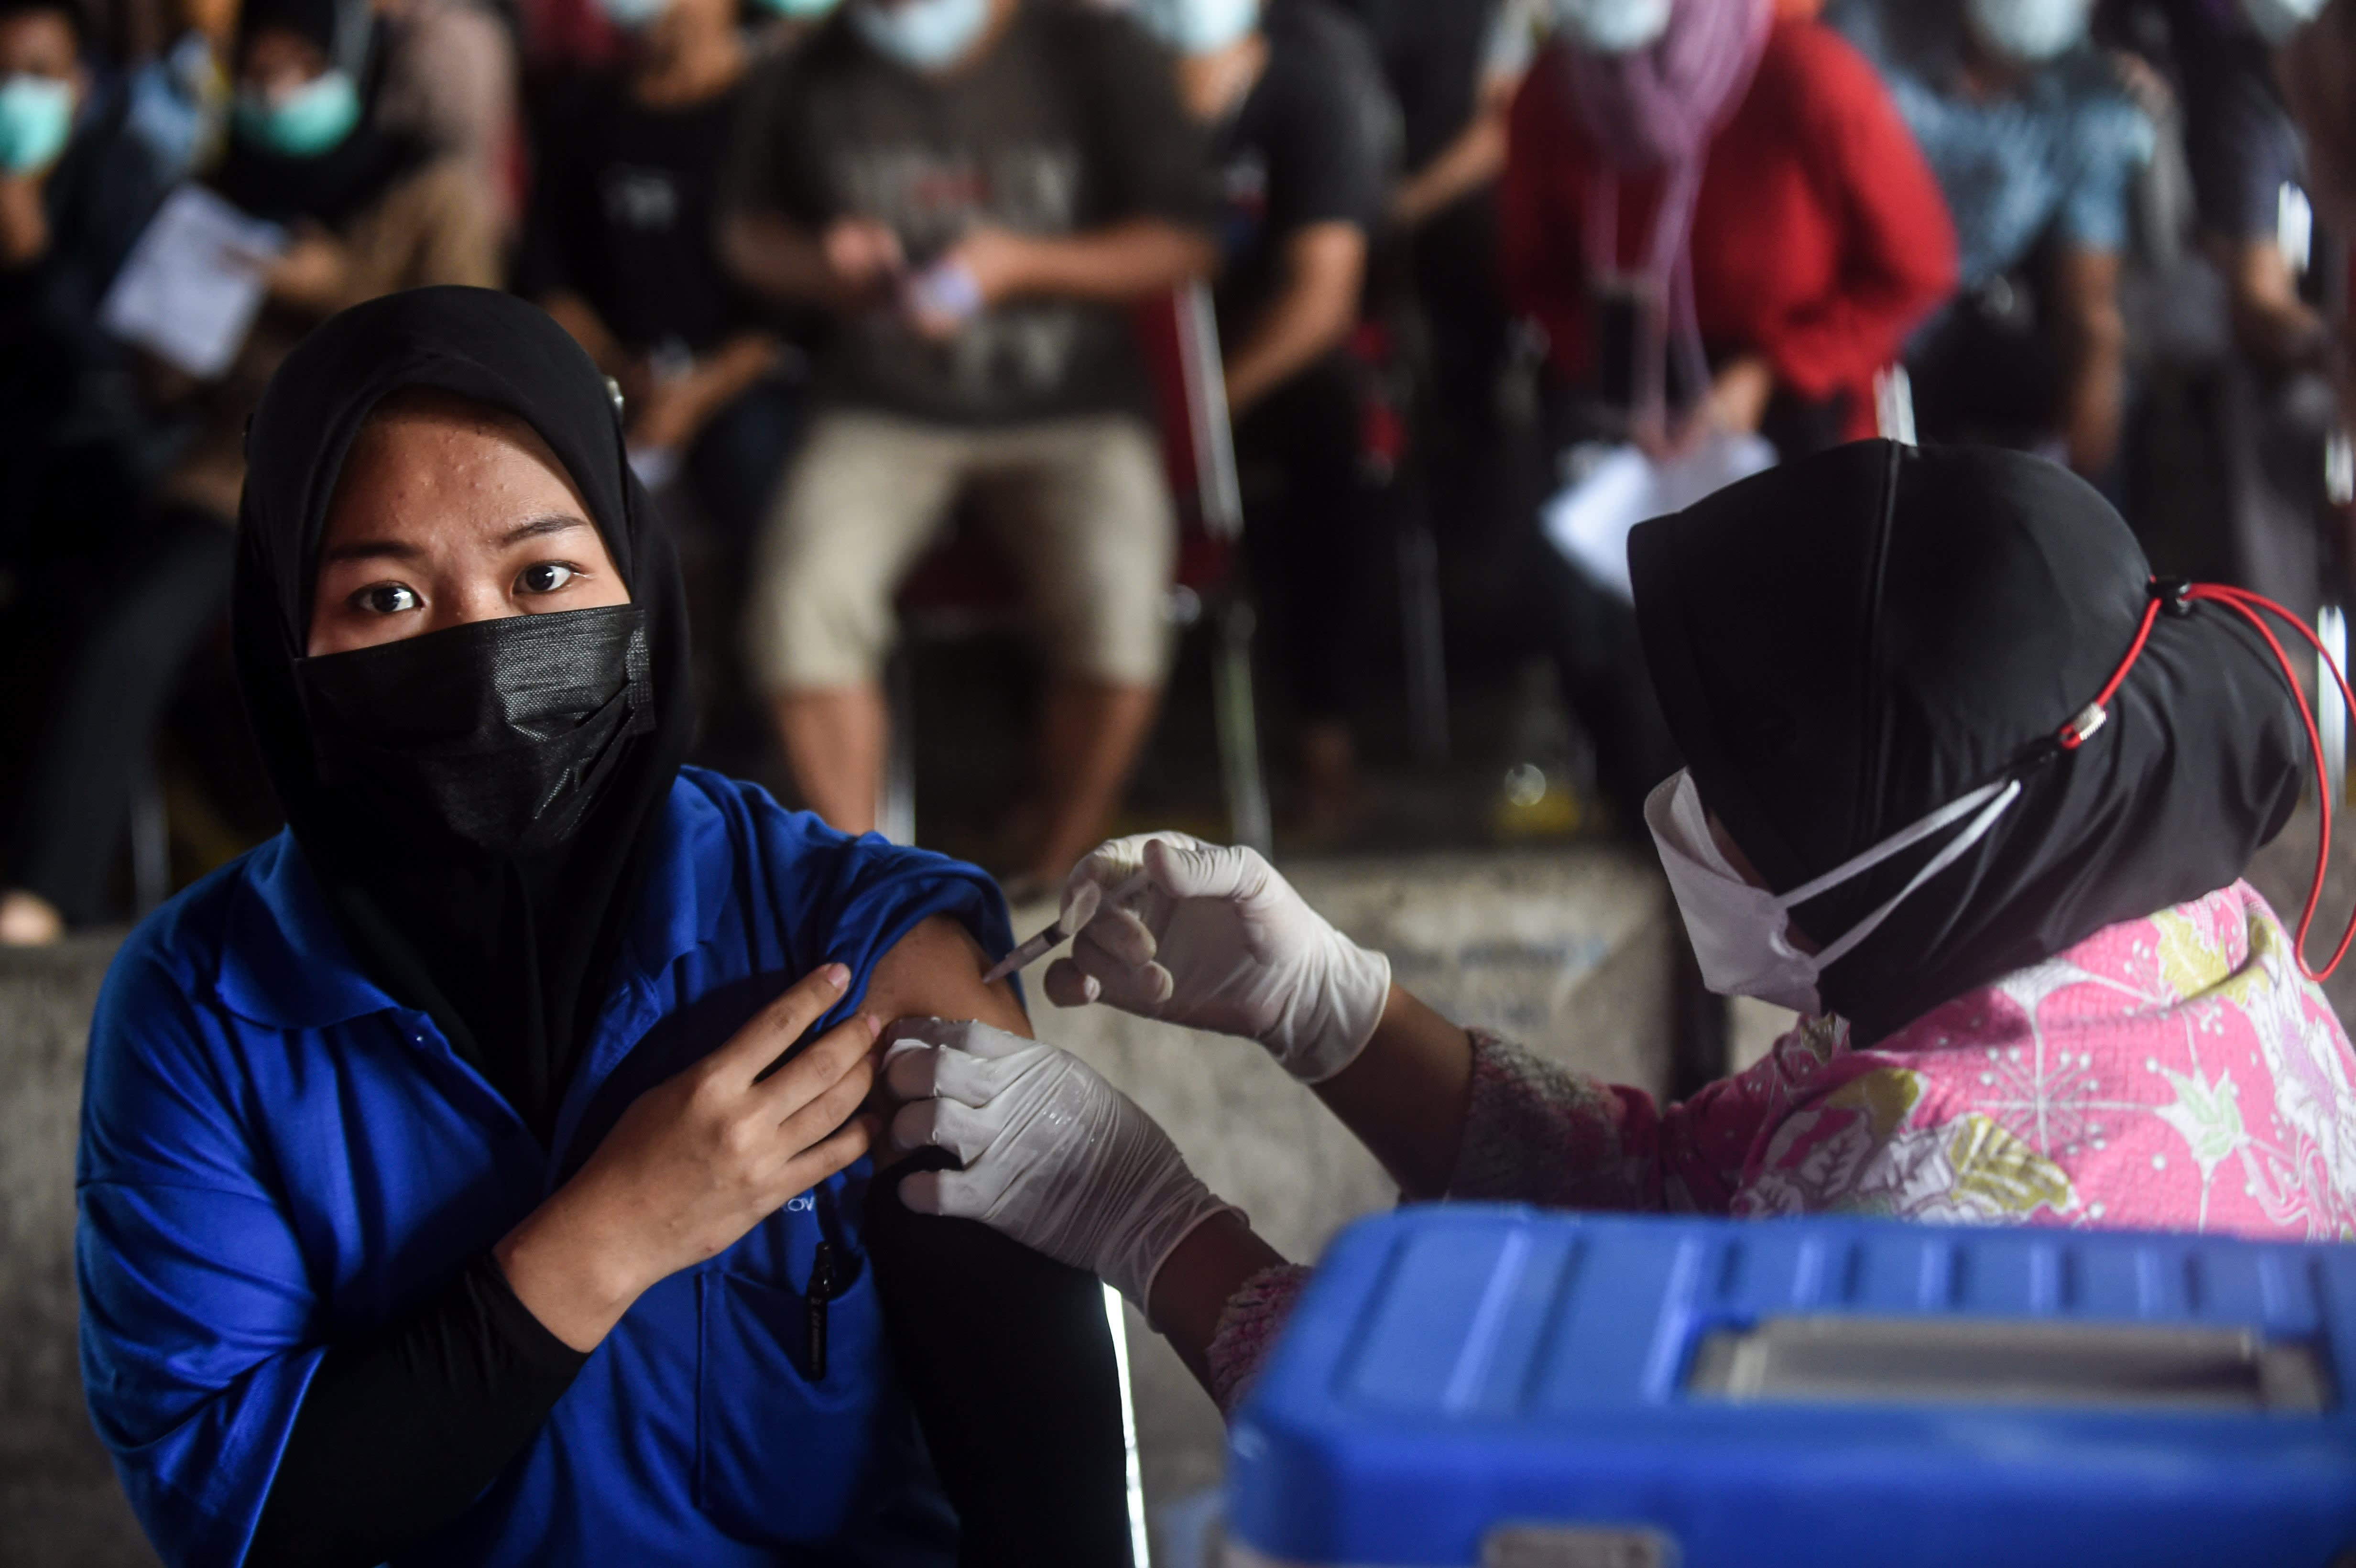 , The world 'desperately' needs rich countries to donate Covid vaccines, says former New Zealand prime minister, The World Live Breaking News Coverage & Updates IN ENGLISH